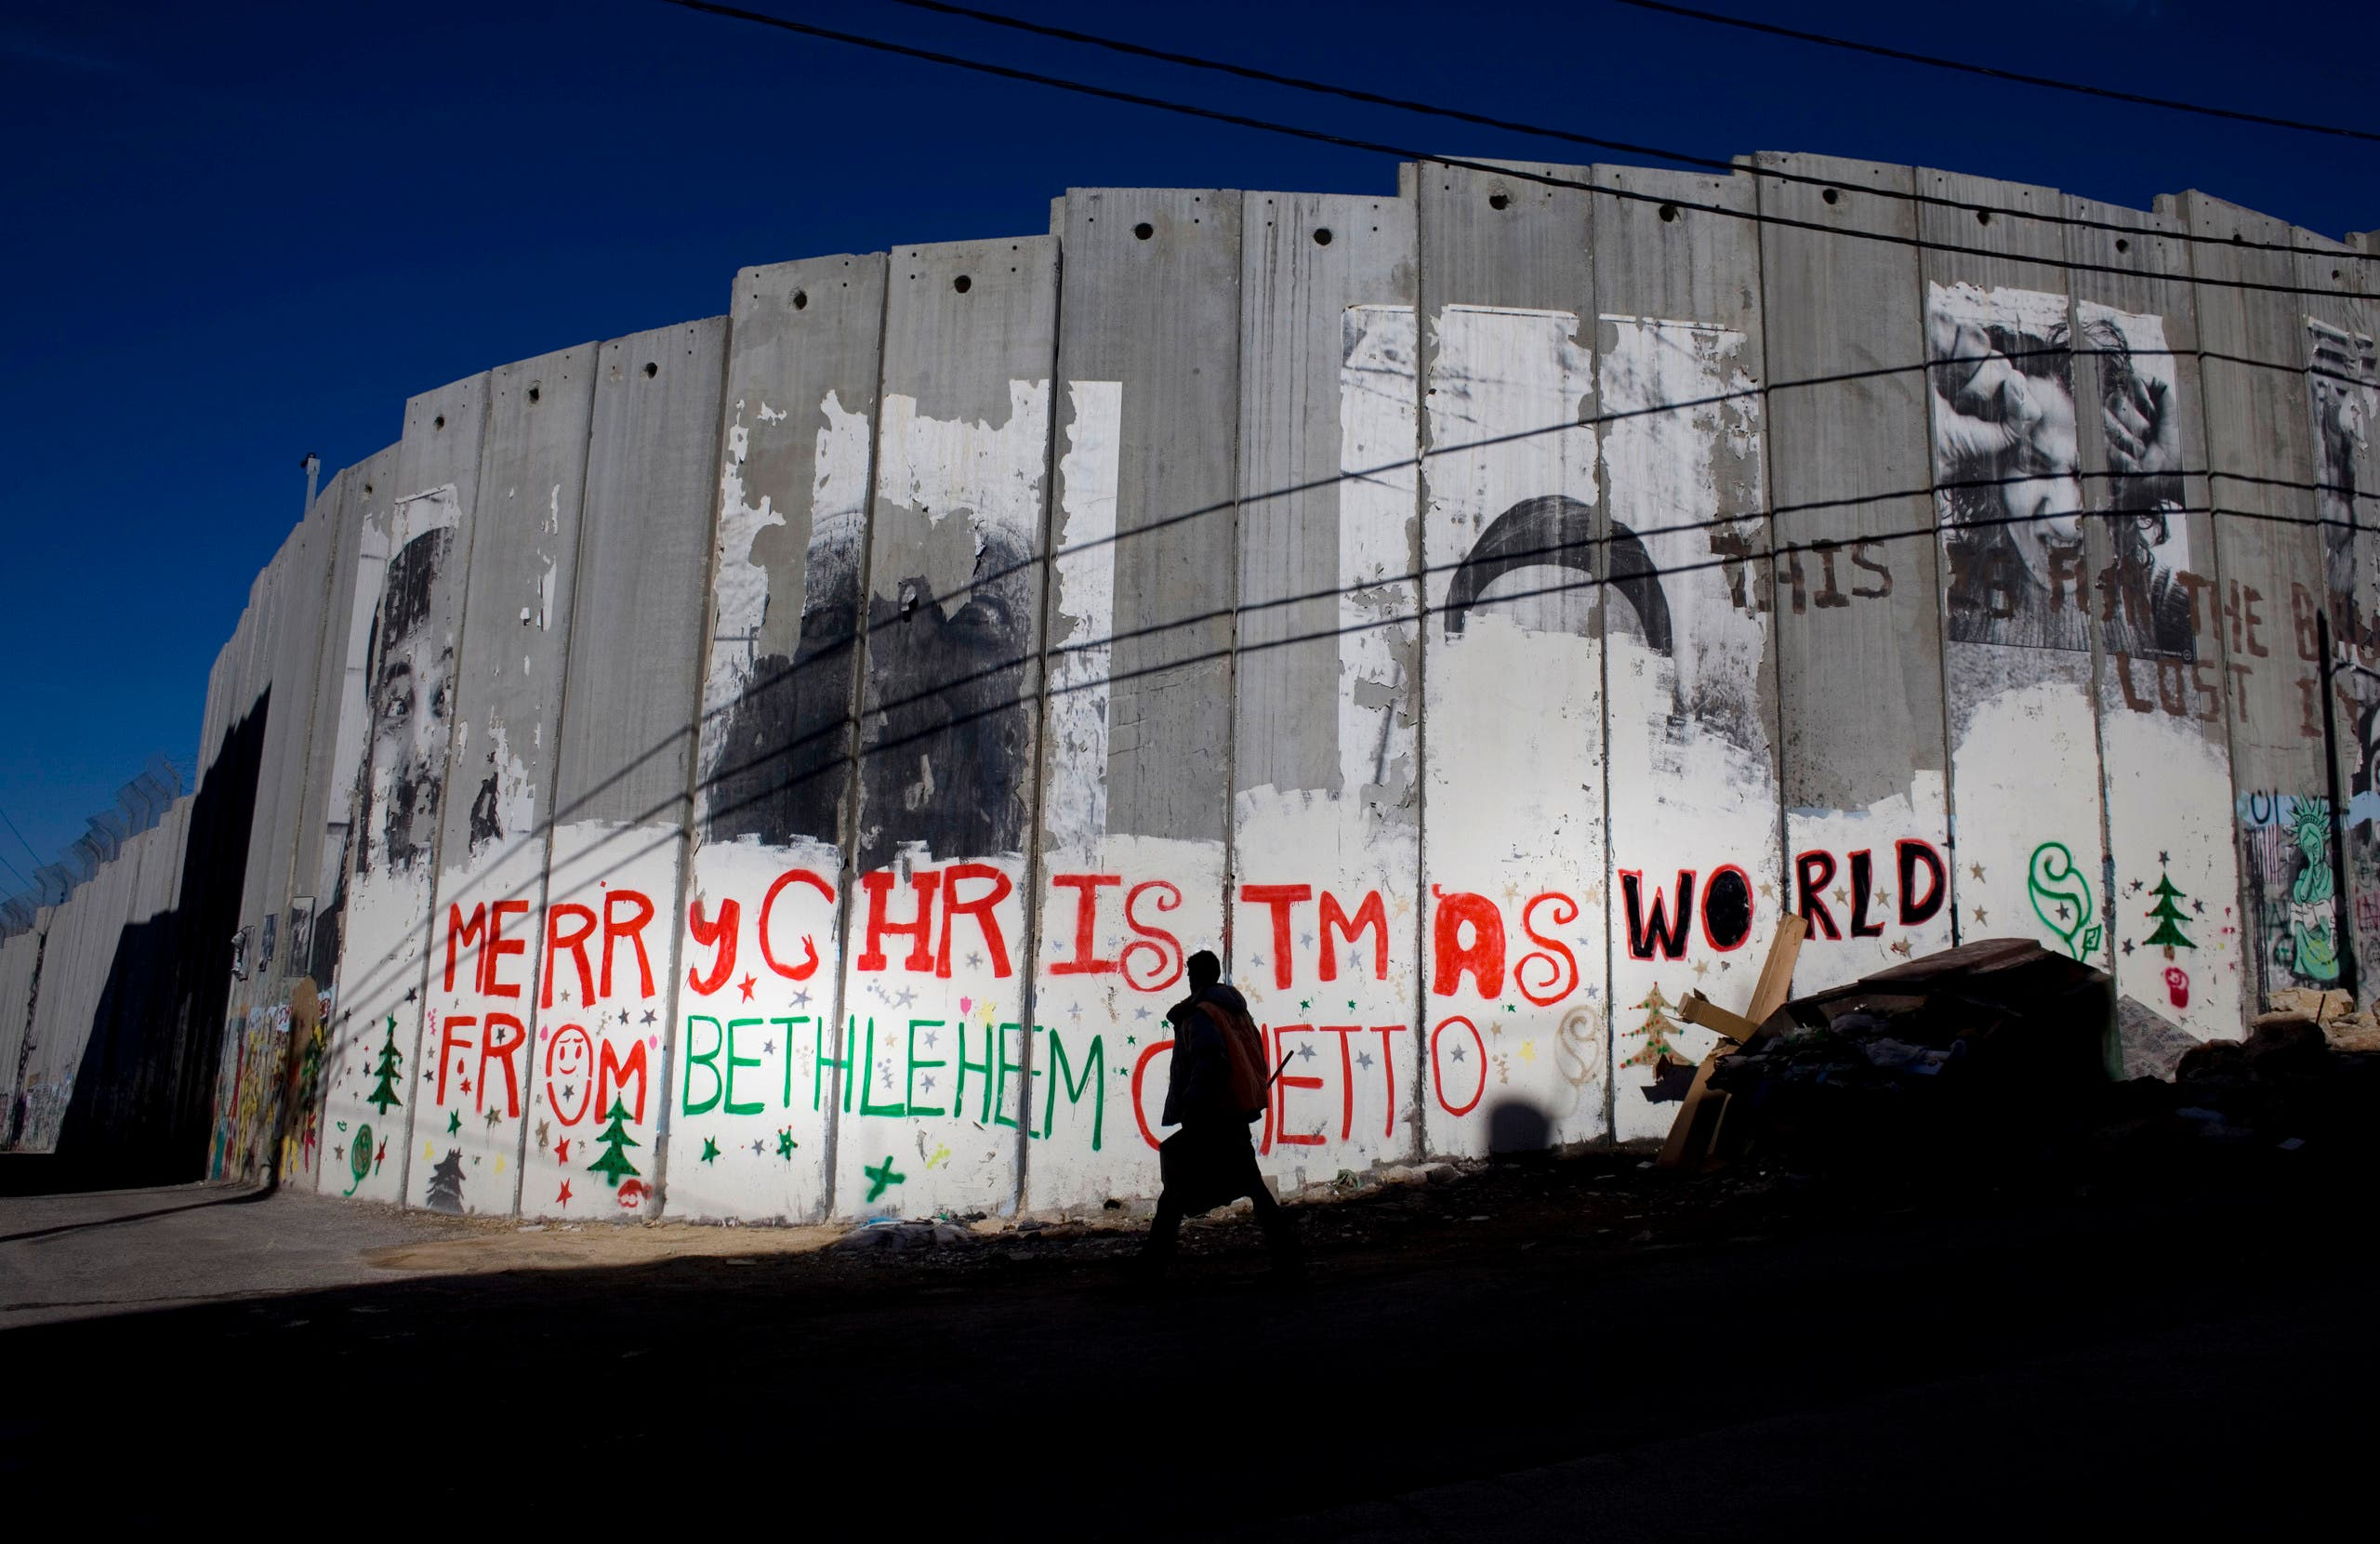 A Palestinian man walks past a portion of Israel's separation barrier in Bethlehem in December 2010. (File photo: AP)